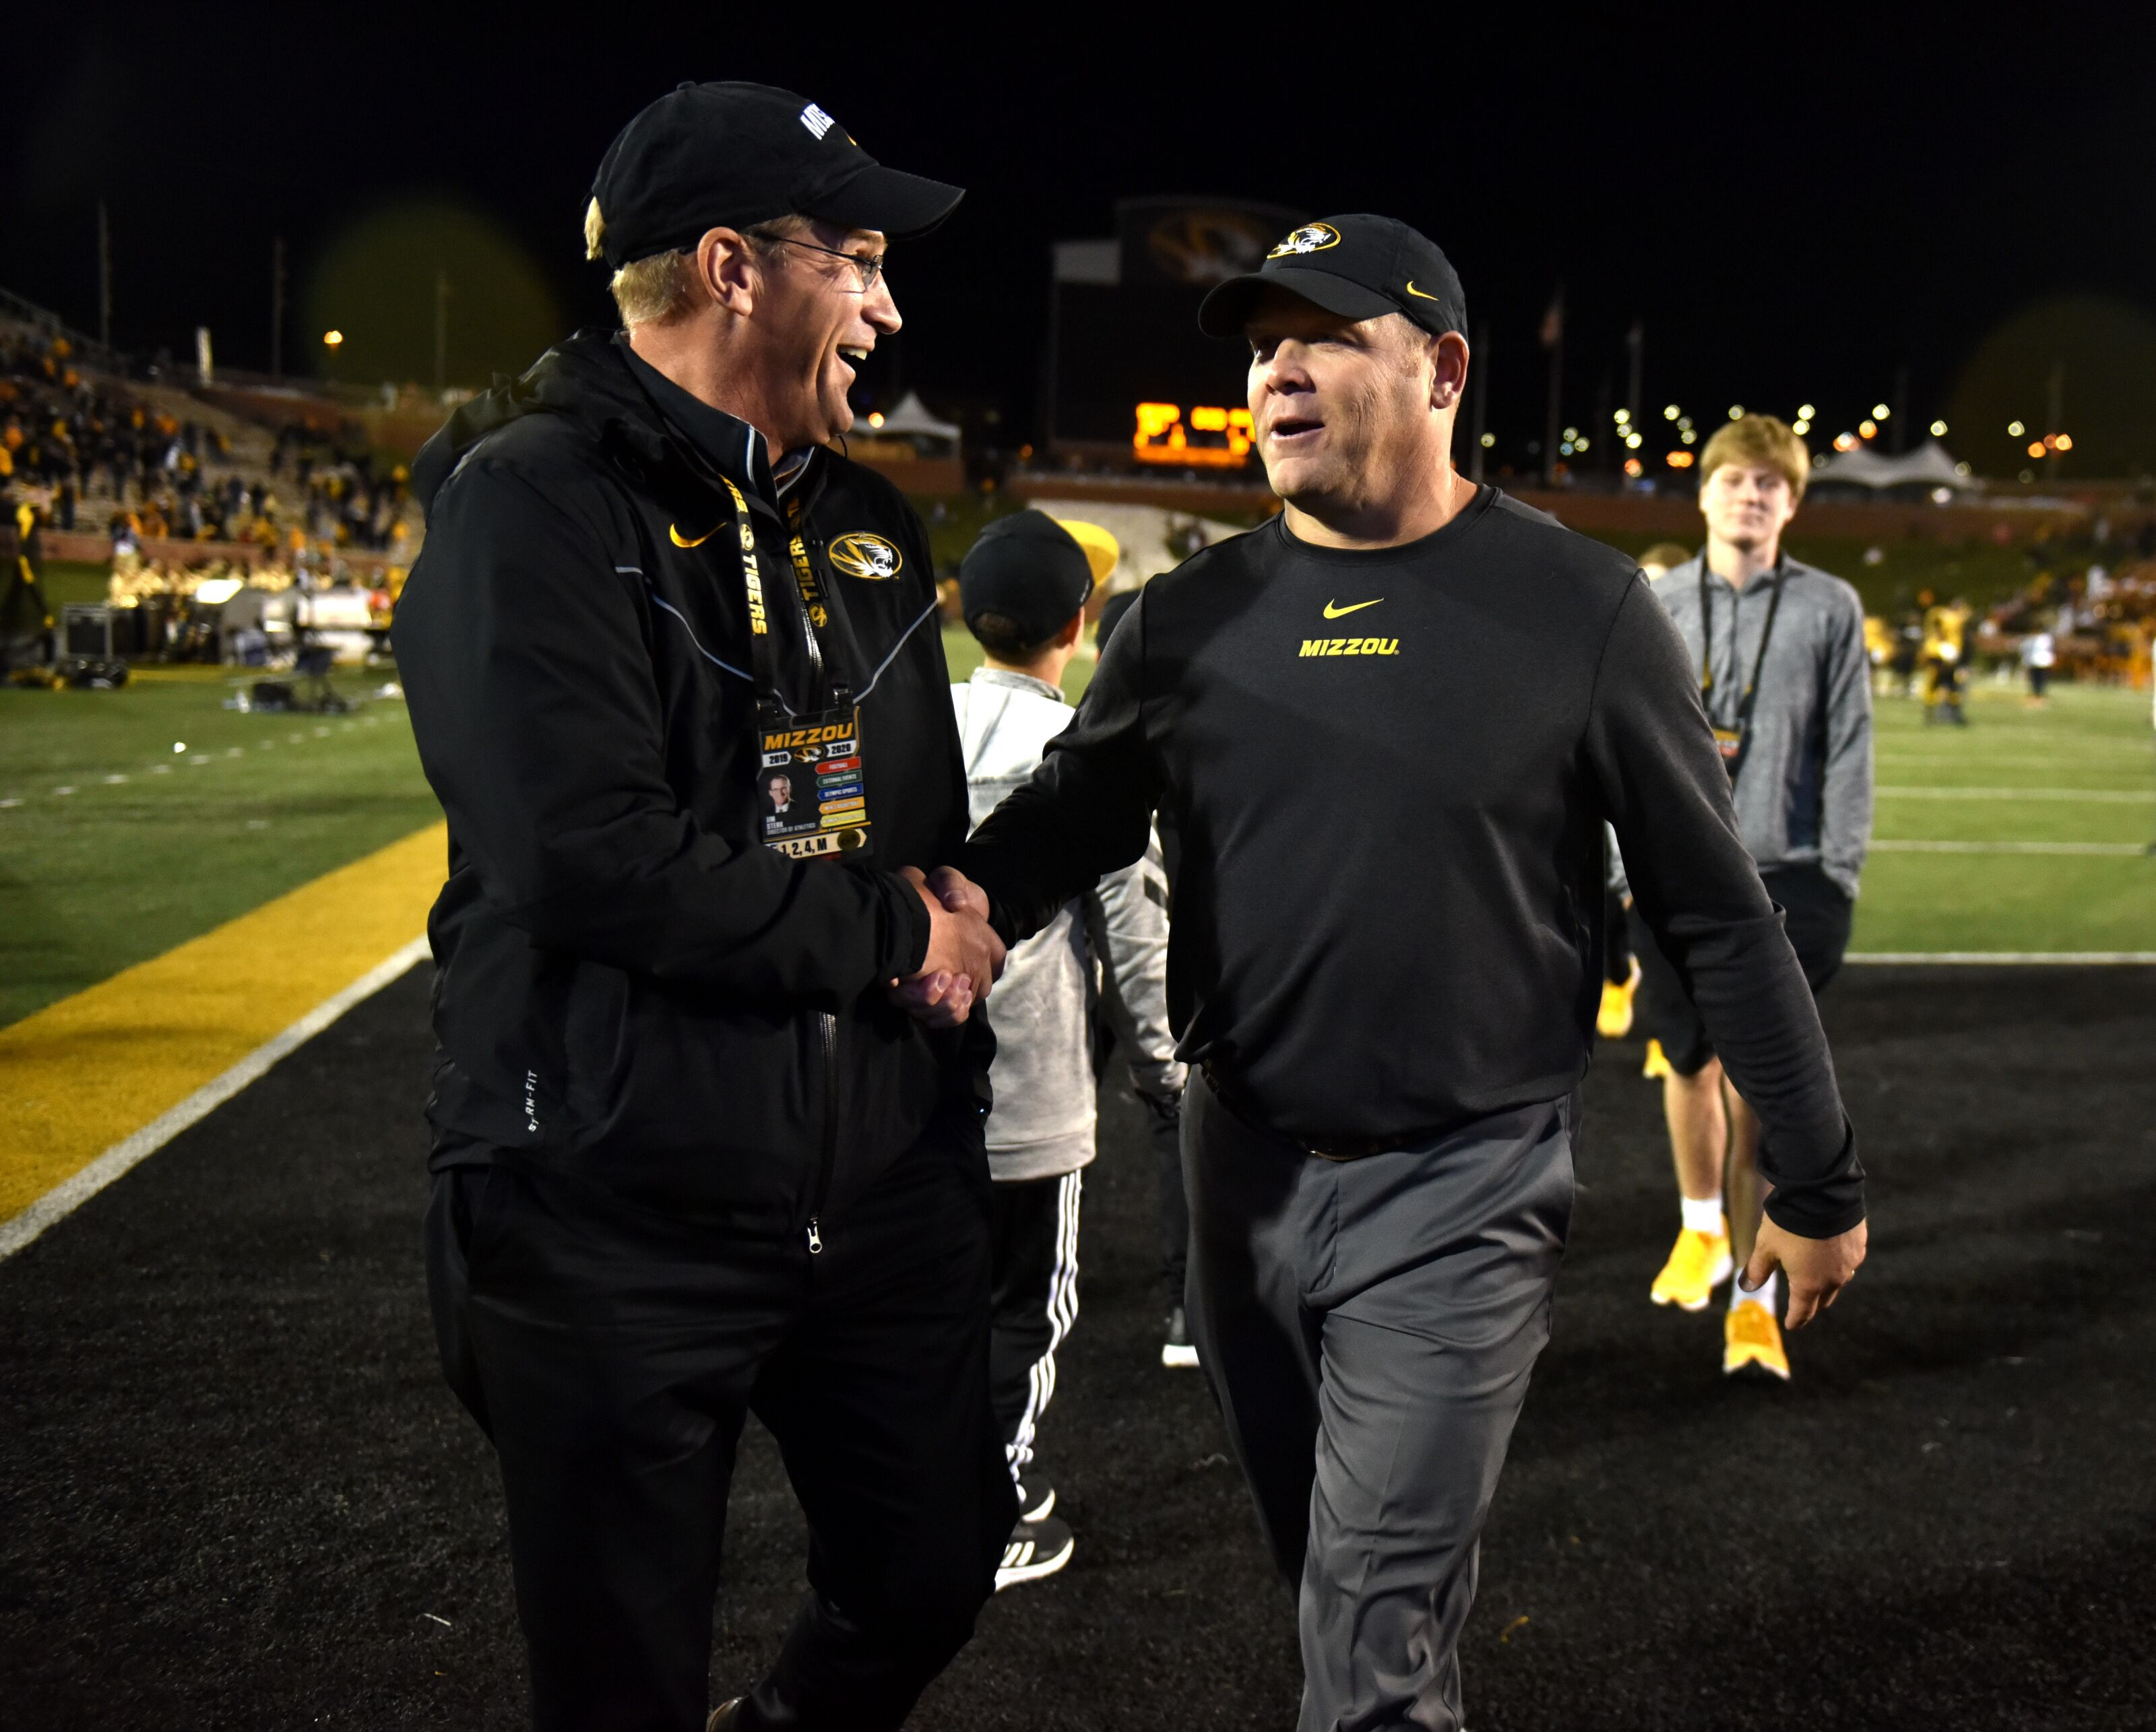 Mizzou football not defined by Wyoming loss, Odom says